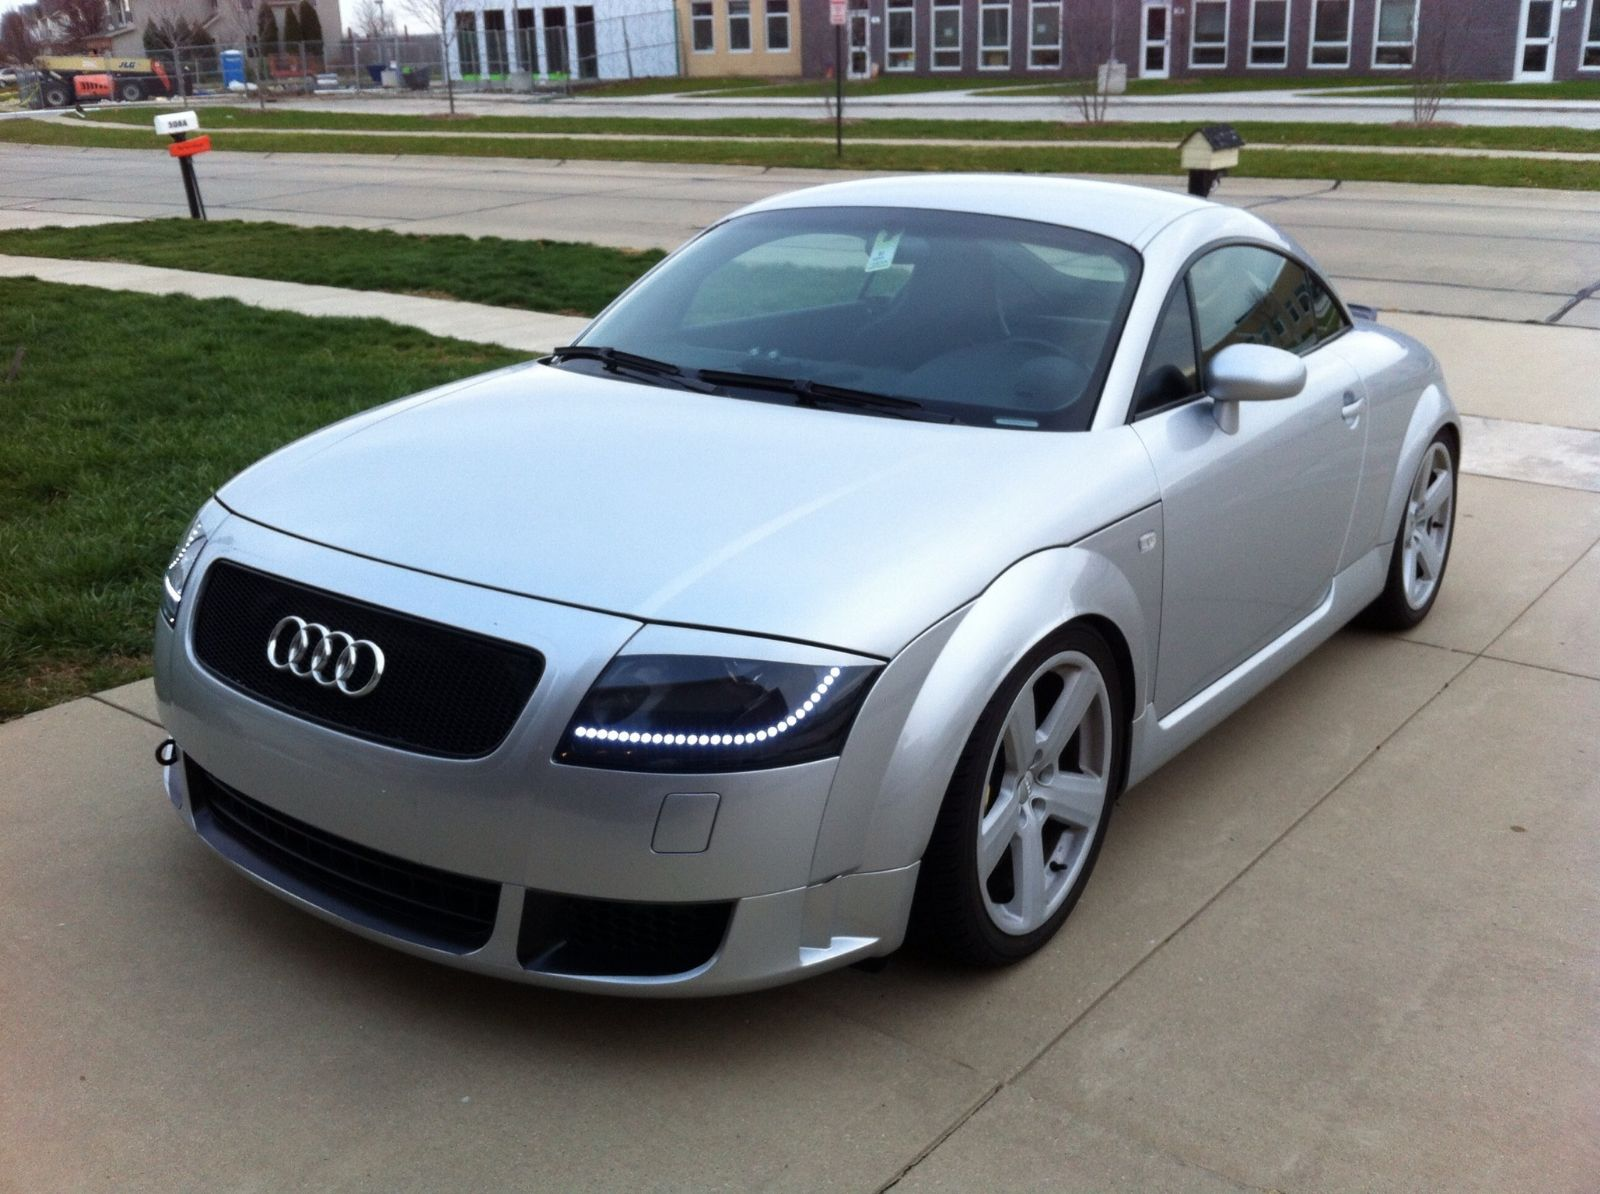 Audi Tt 2002 Model | Upcomingcarshq.com